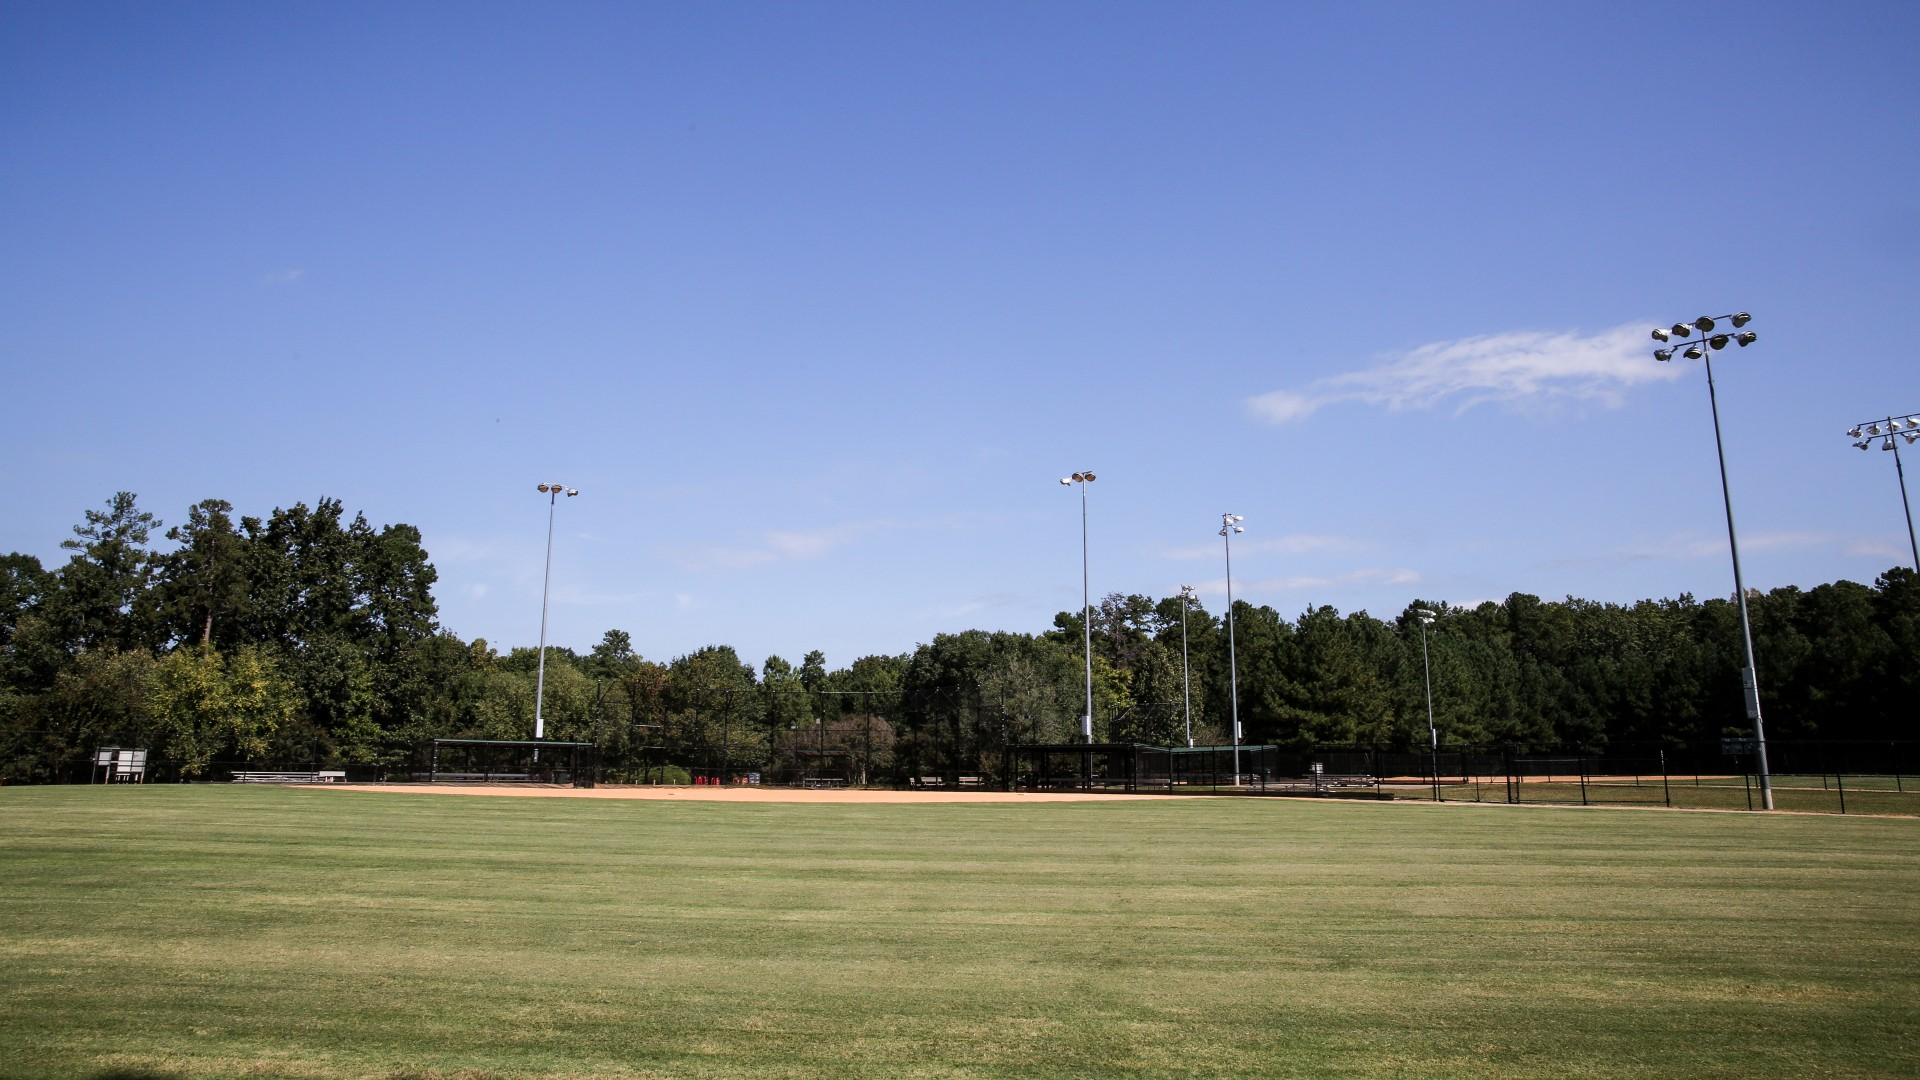 A second slightly smaller multipurpose field at Baileywick Park